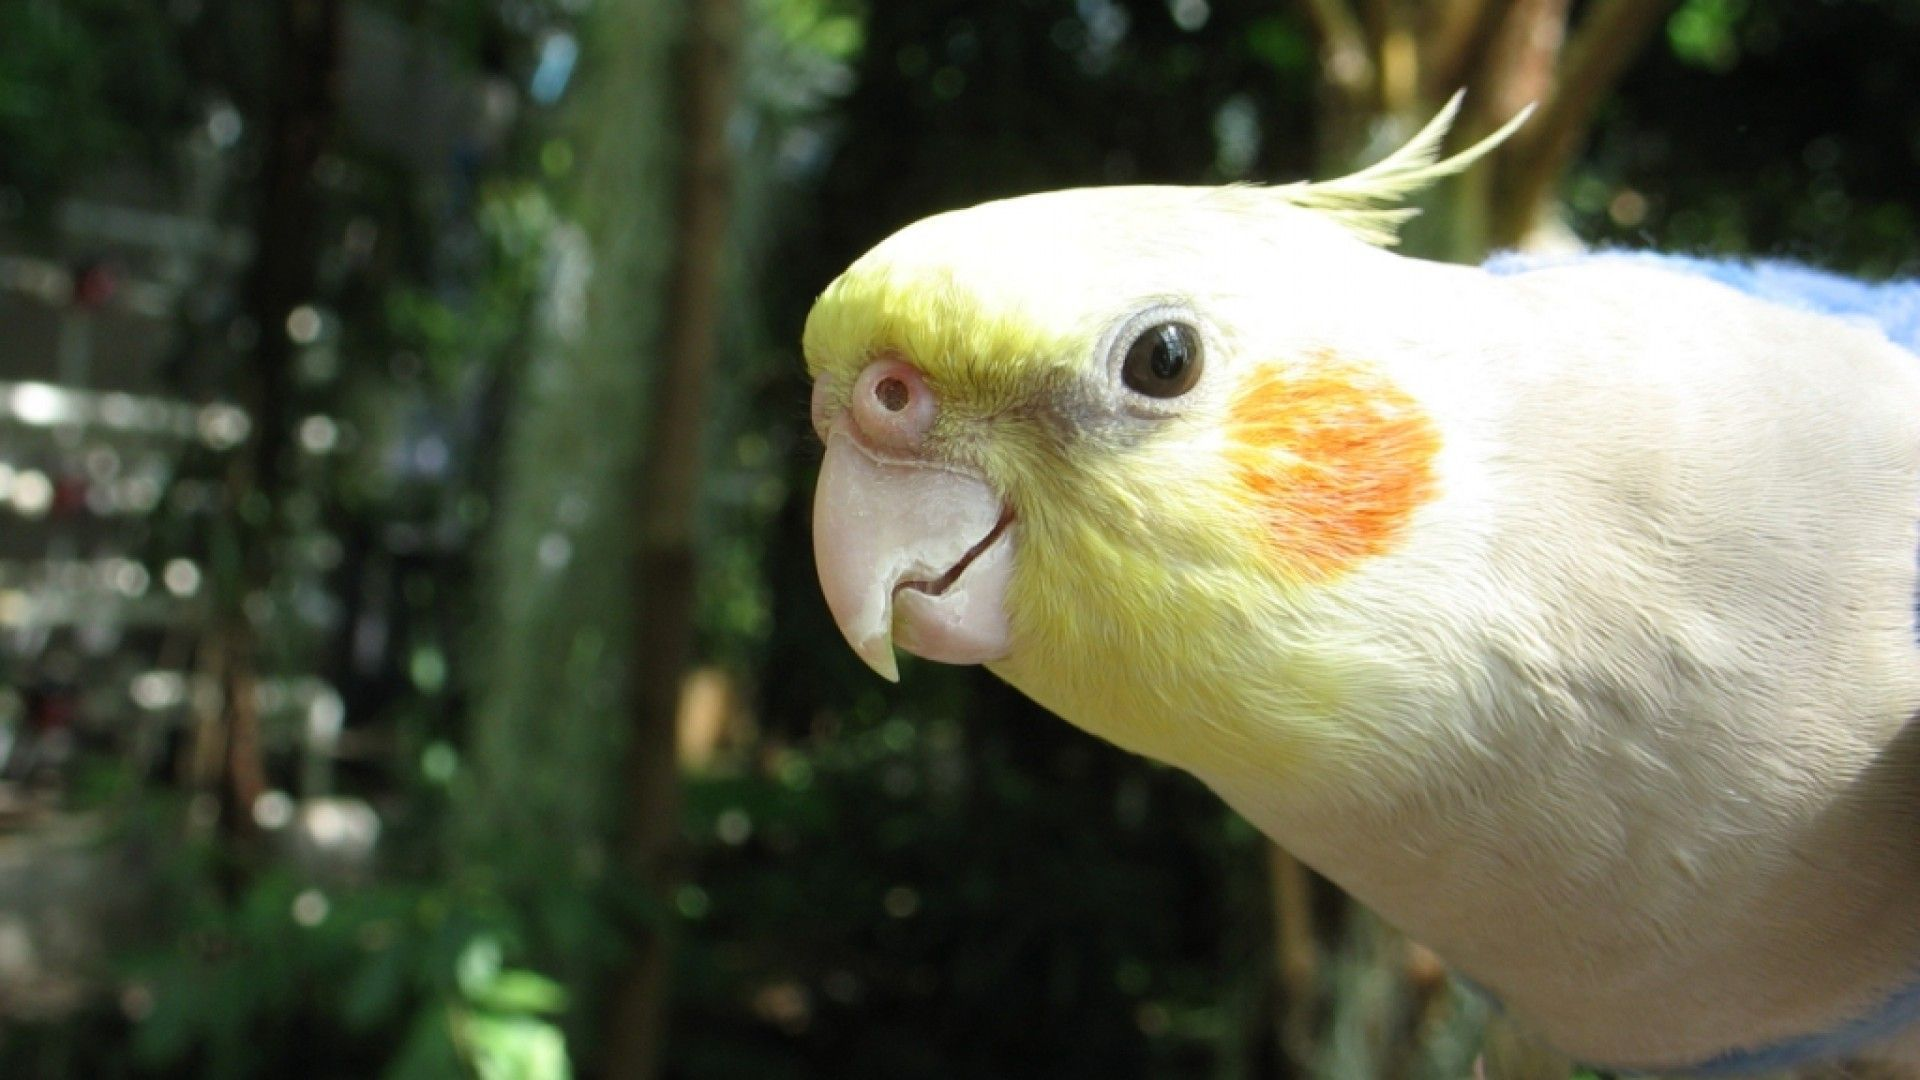 Cockatiel face photos